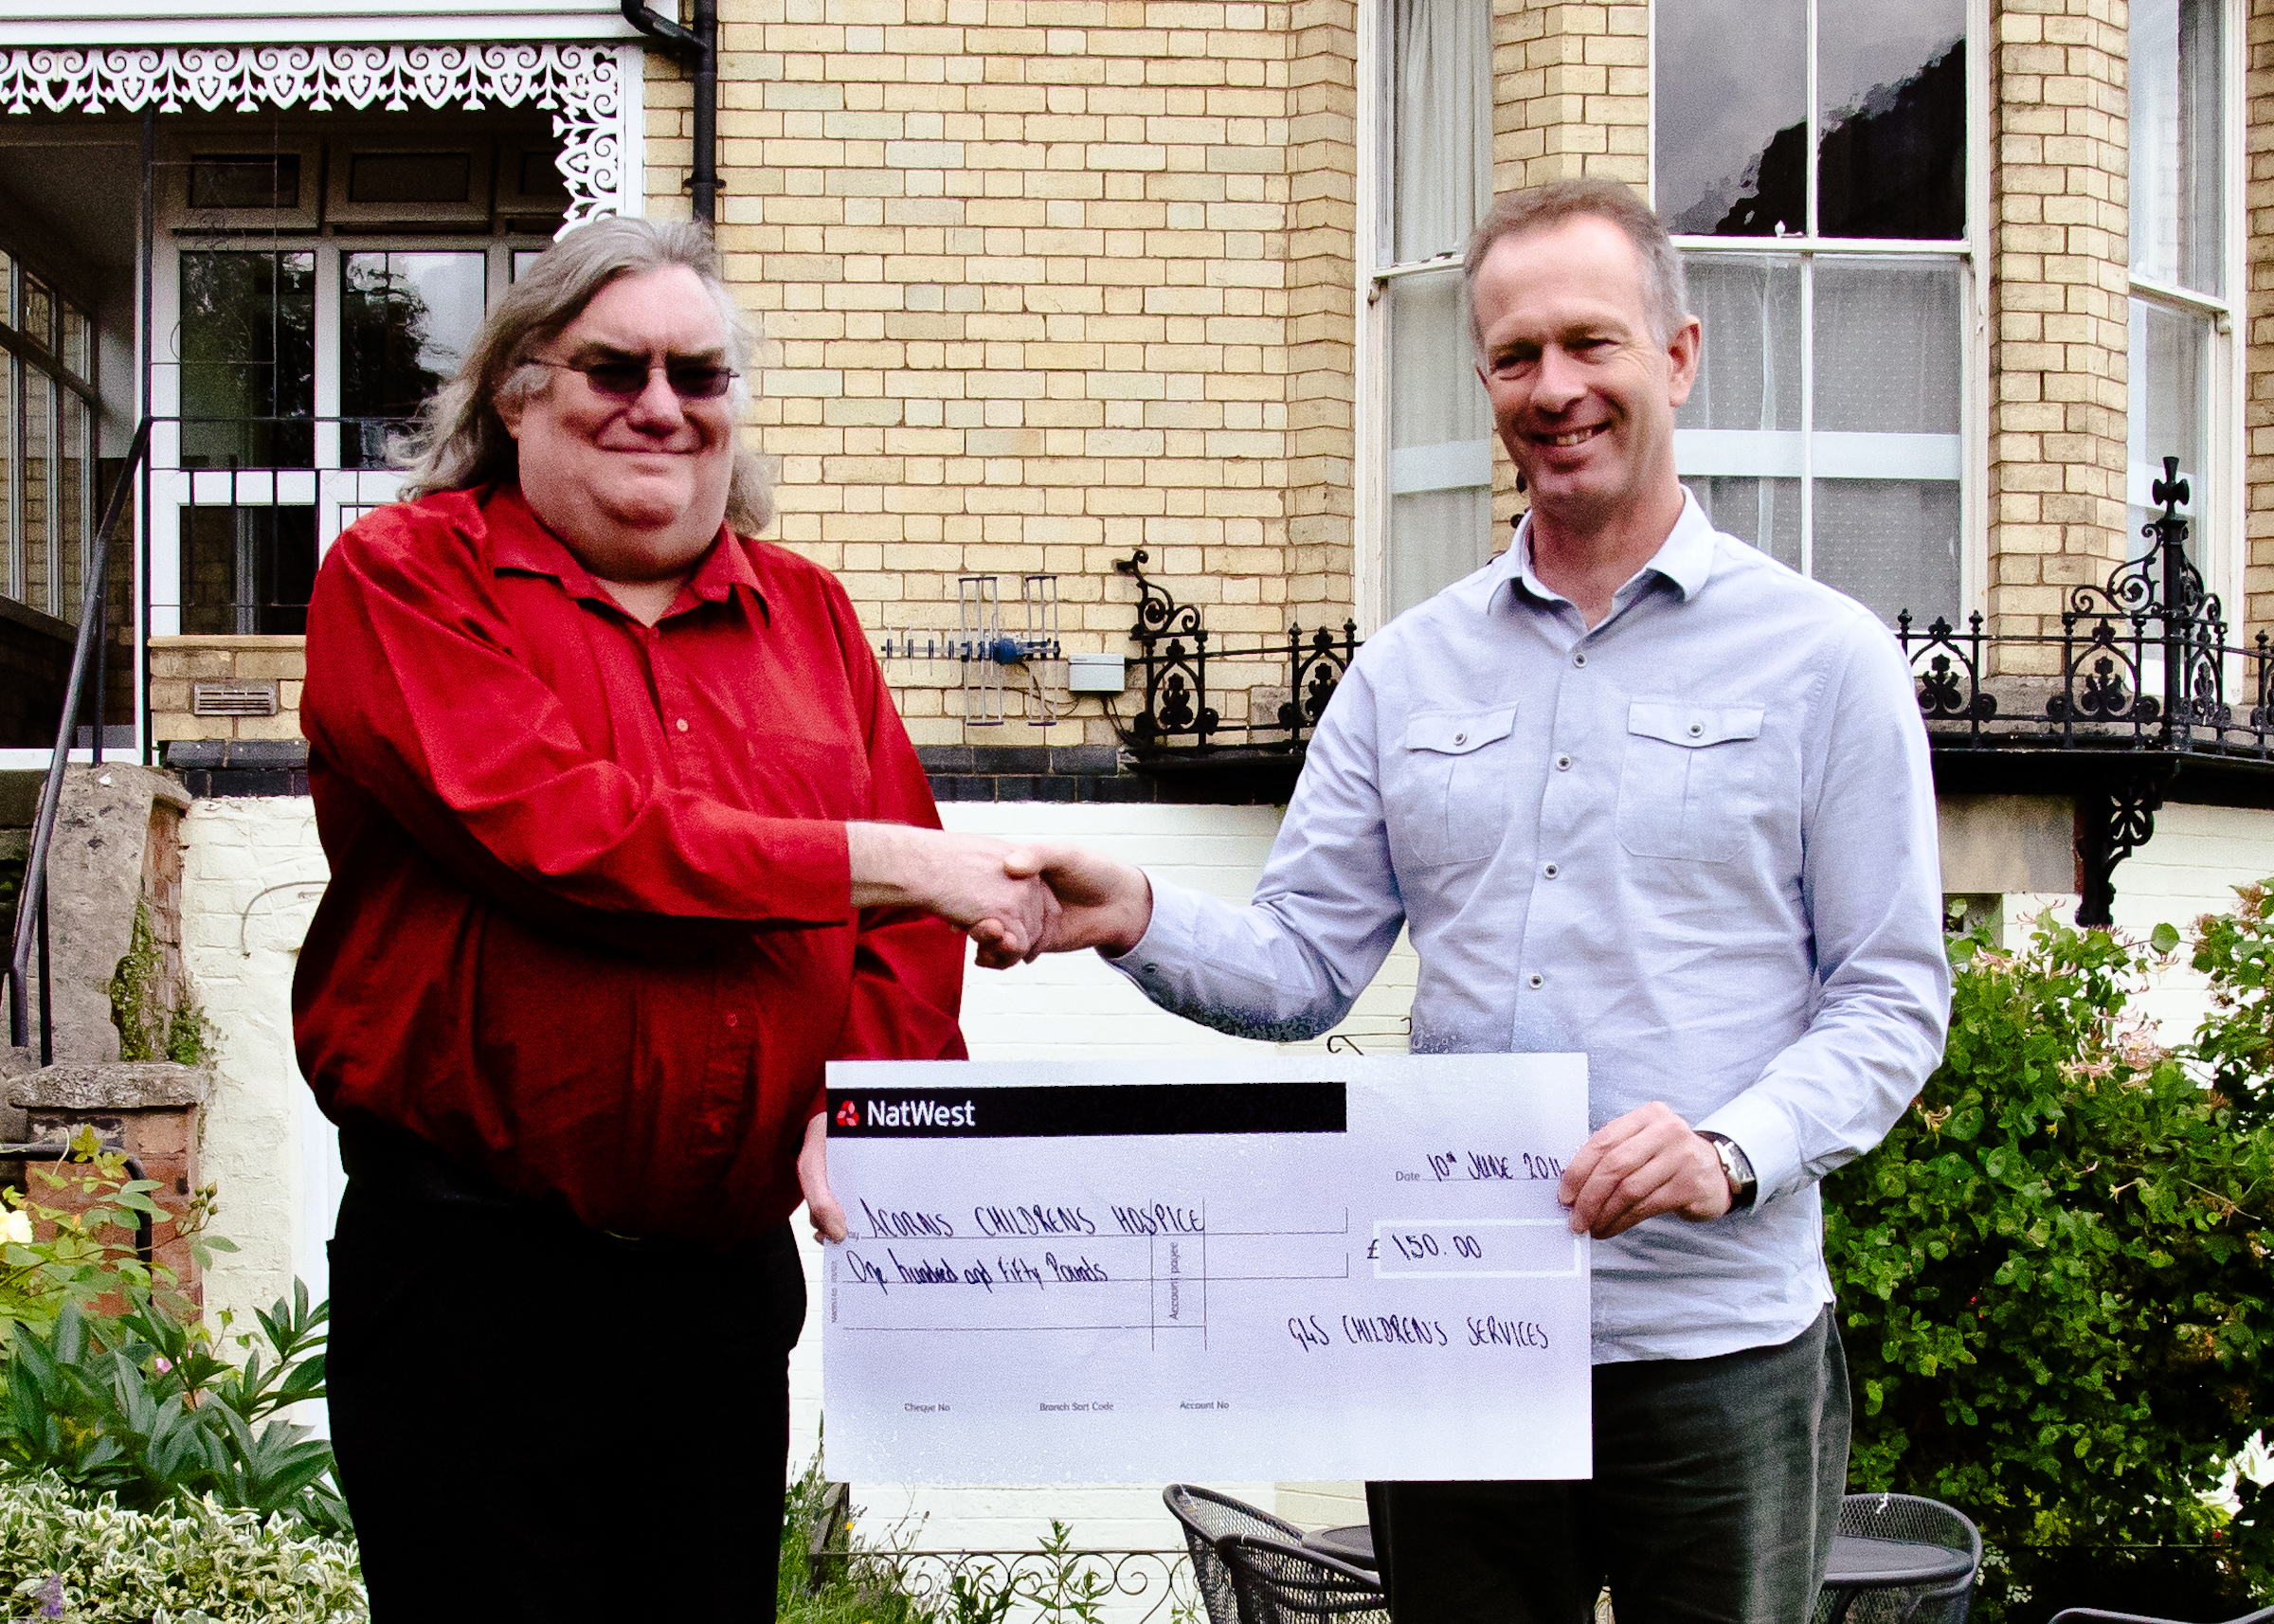 Ian Parker, manager of Malvern's G4S Children's Services in Malvern, presents a cheque for £150 to Andy Mapp, towards the Midsummer Mappfest's support of Acorns Children's Hospice.